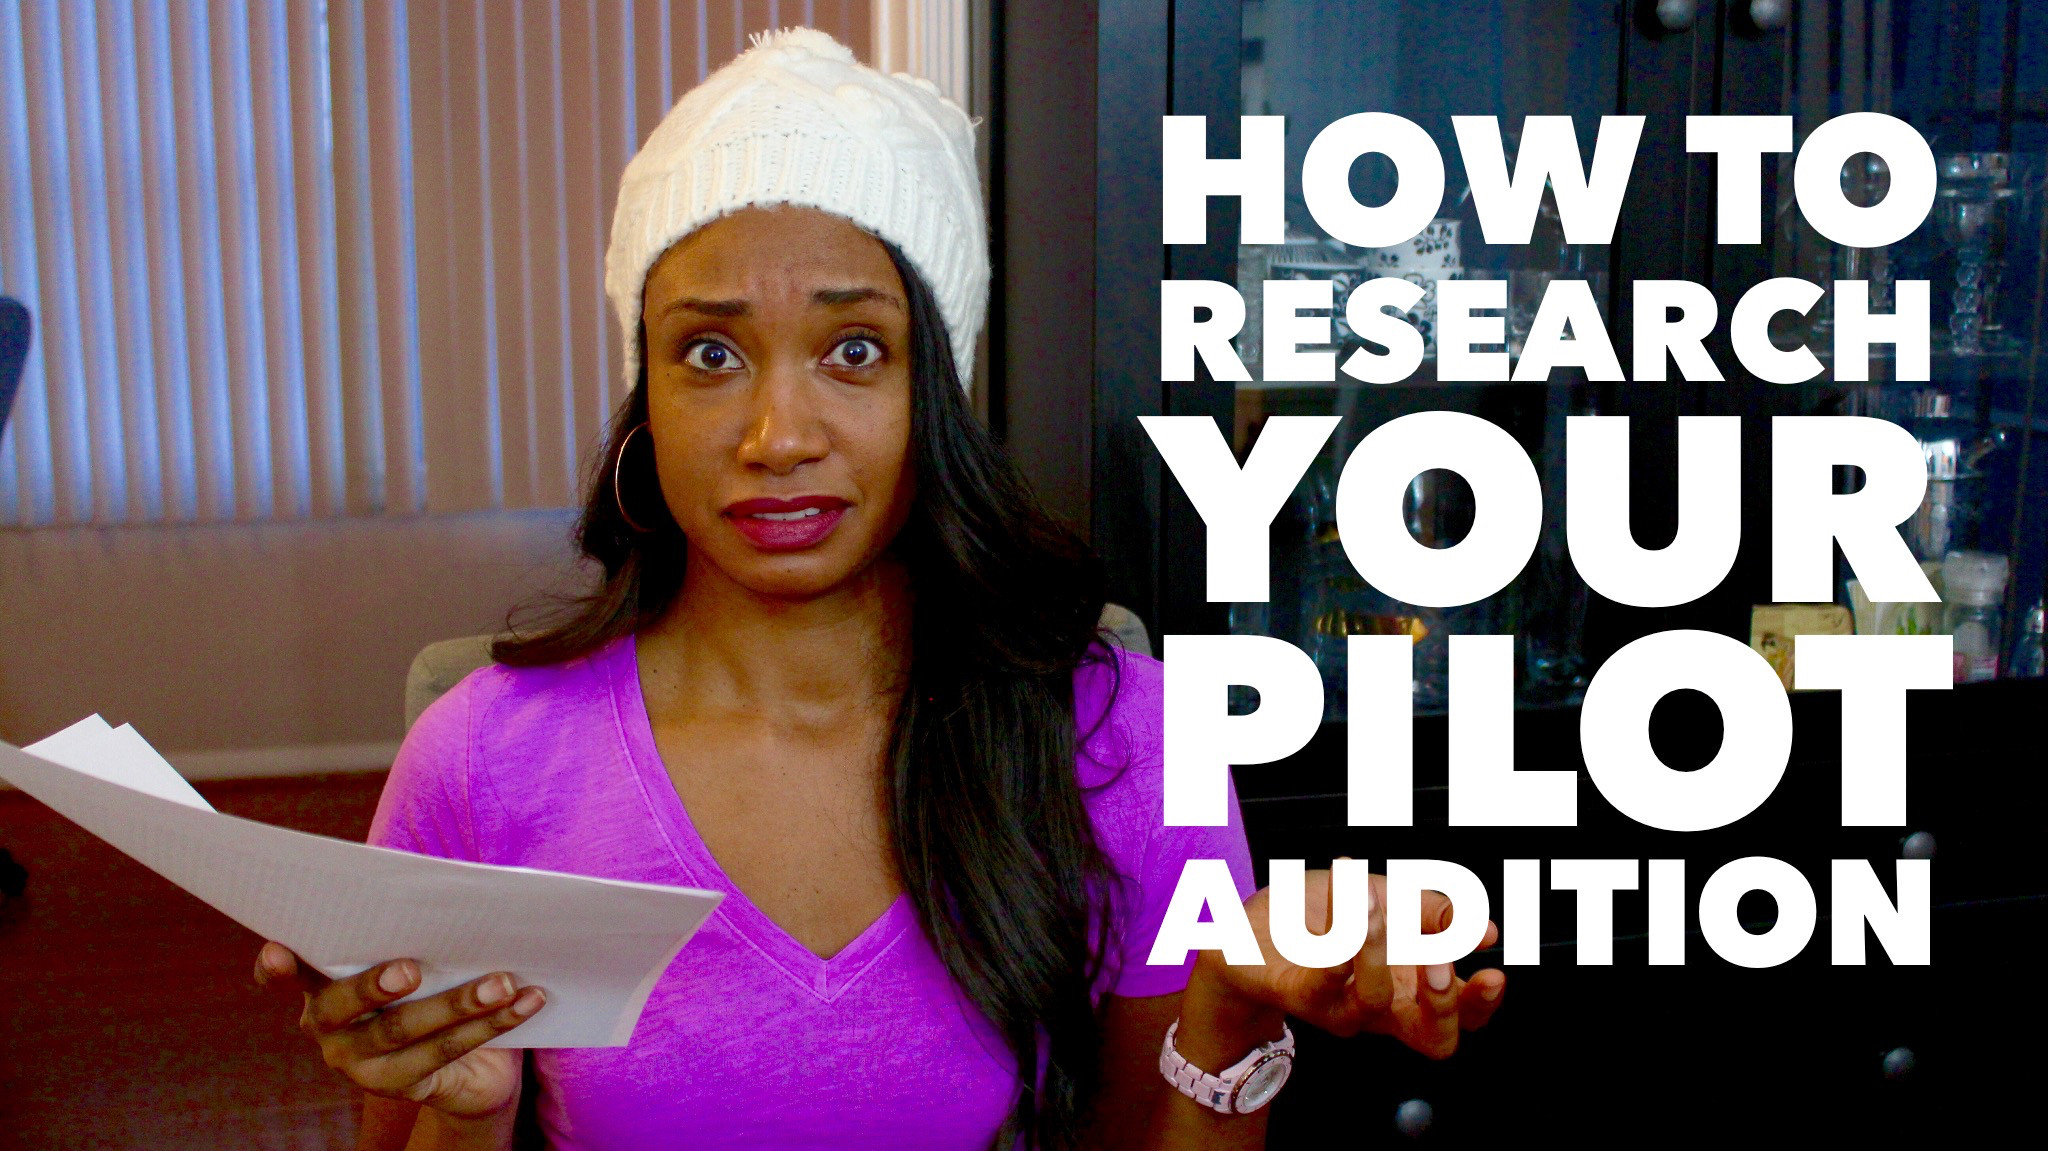 How To Research Your Pilot Audition | #PilotSeasonSeries Vol. 2